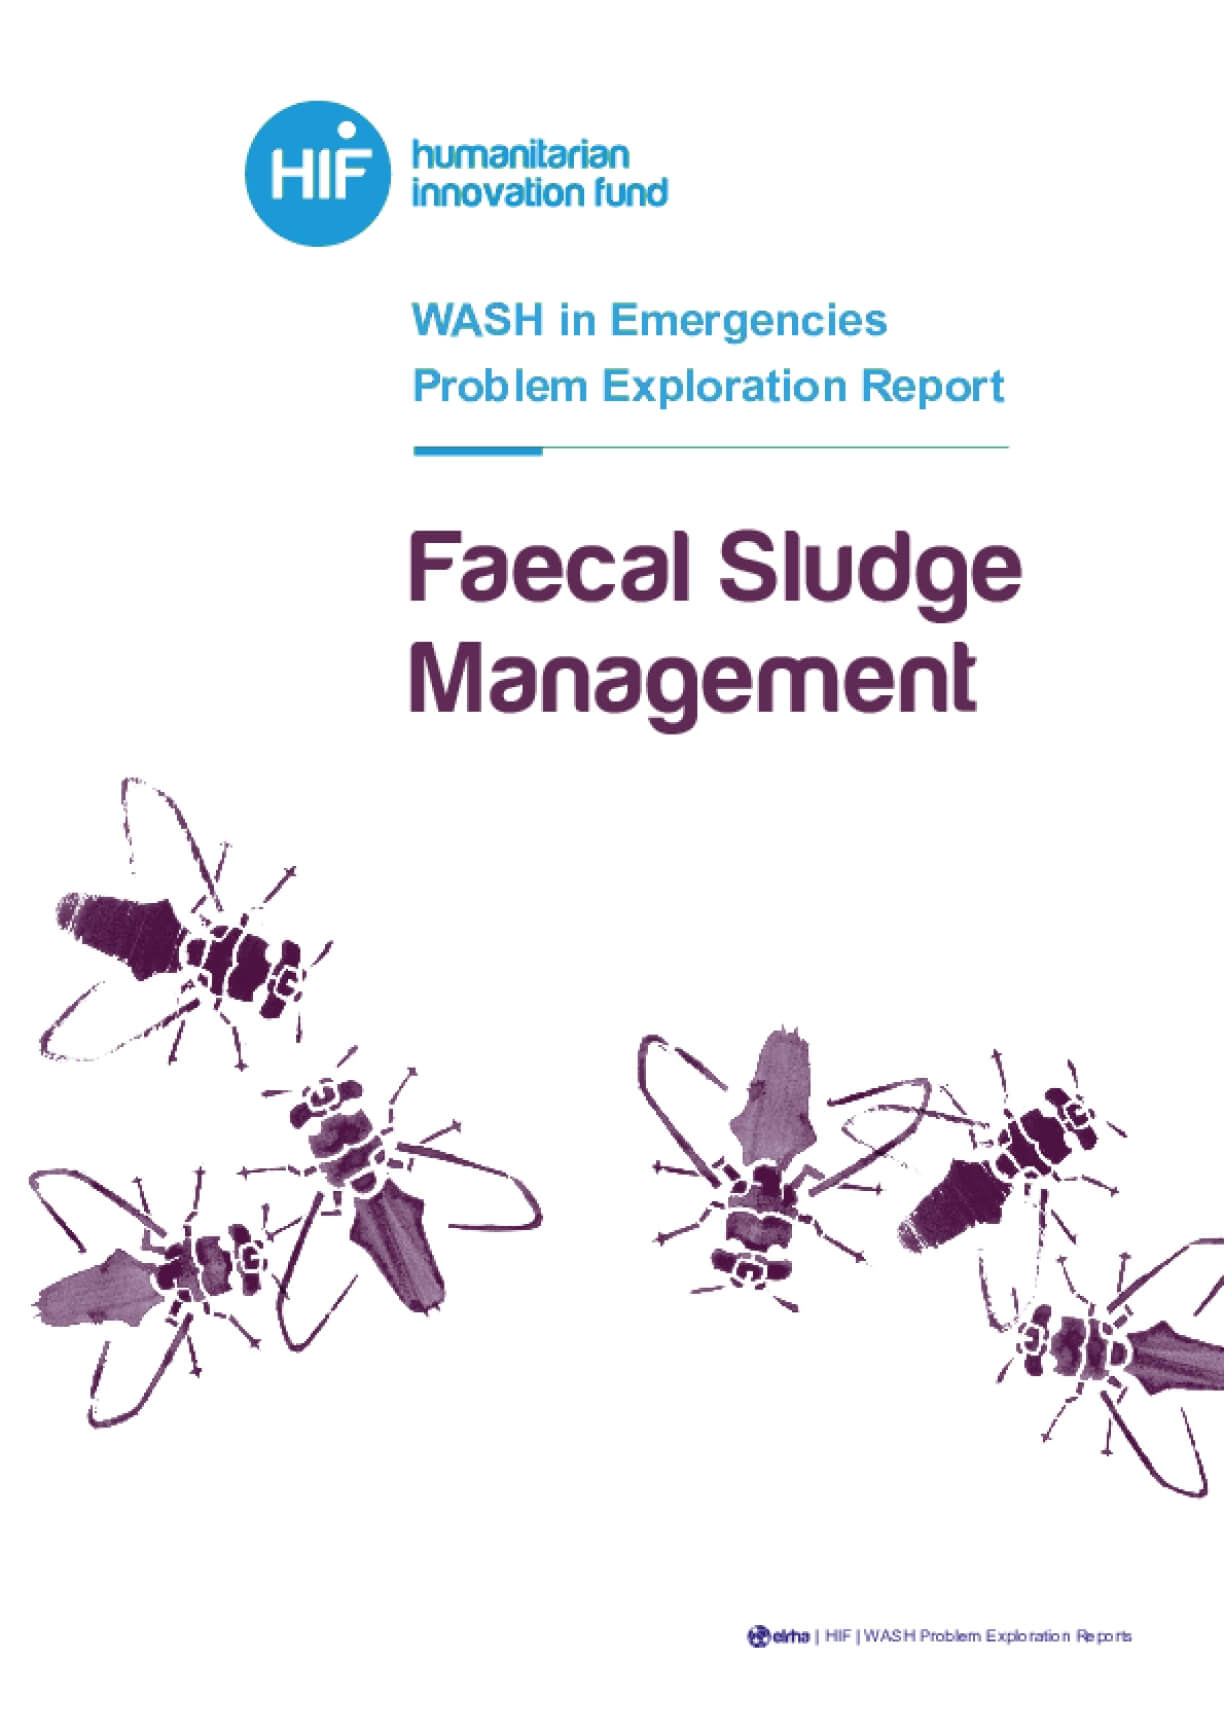 Faecal Sludge Management